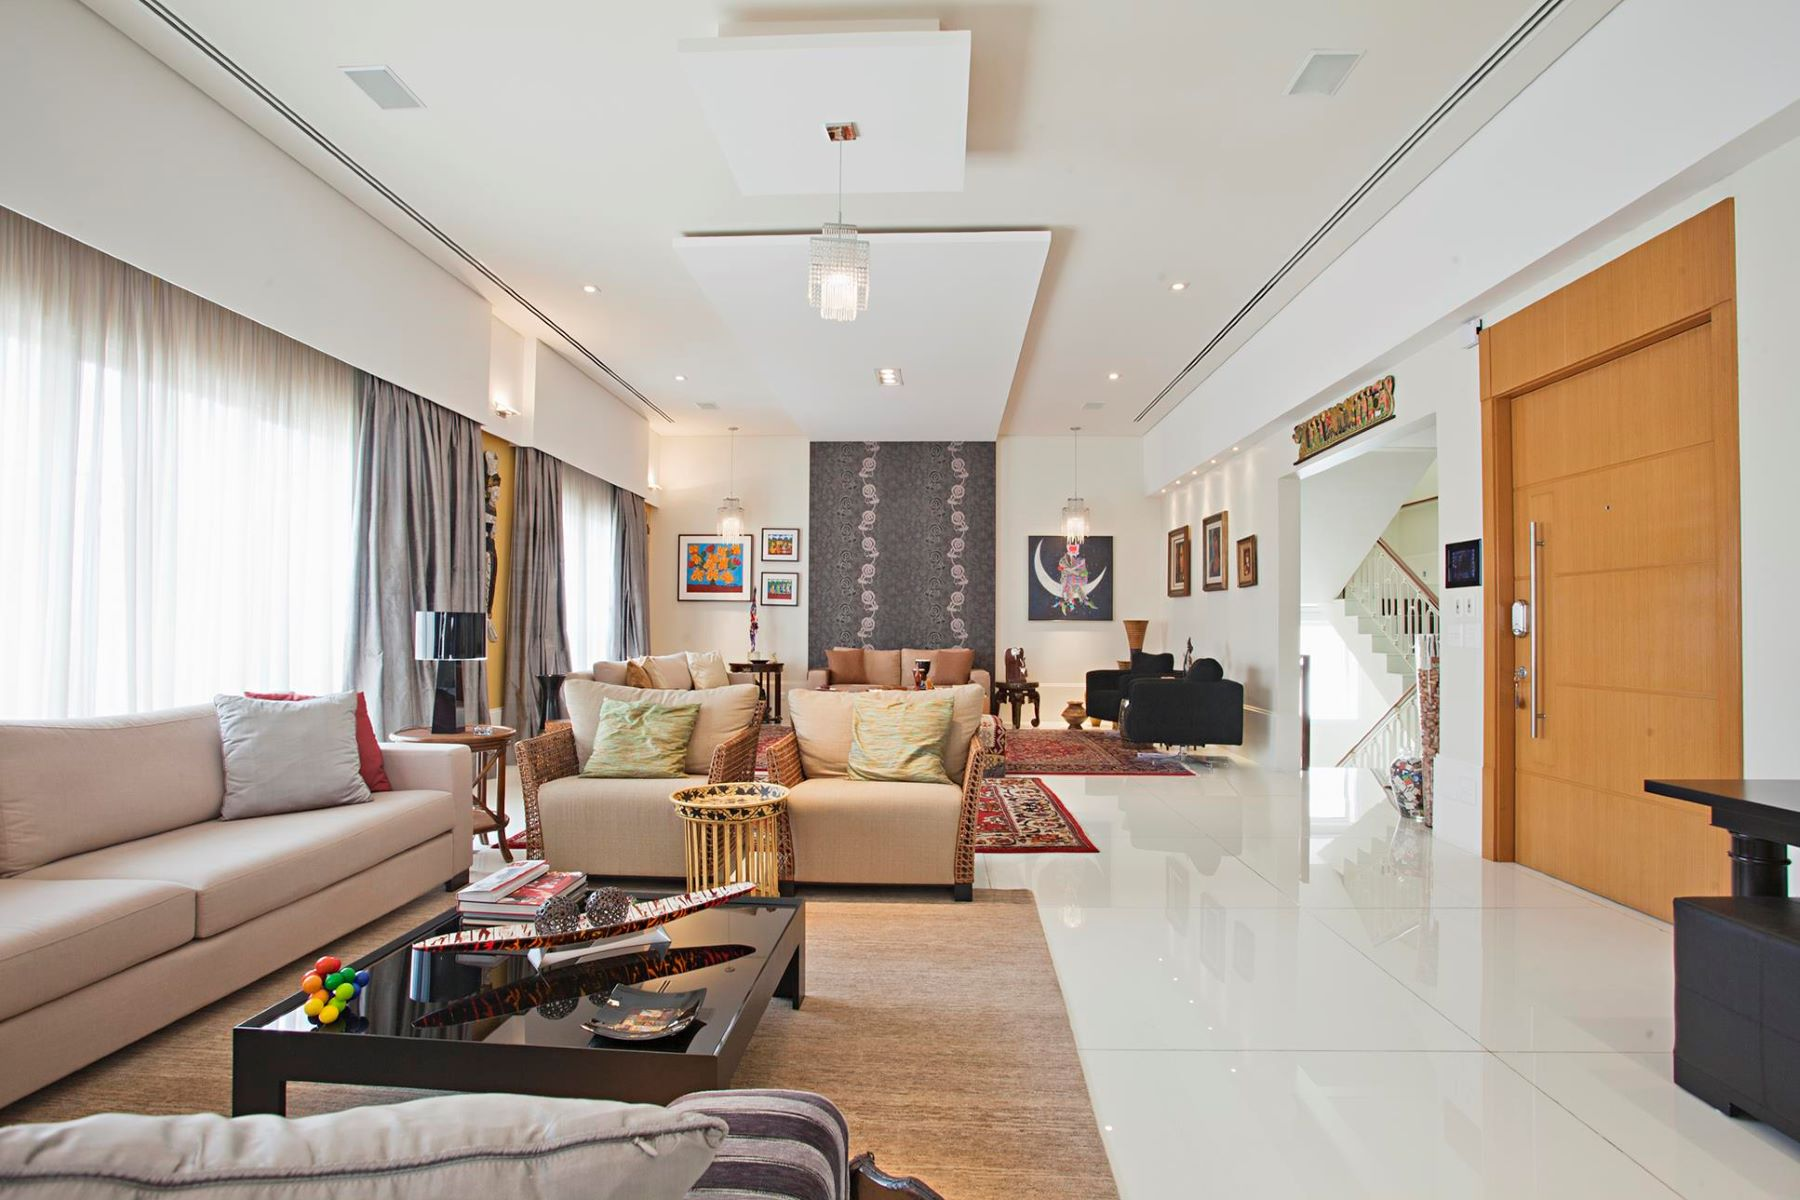 Single Family Home for Sale at Amazing Penthouse Rua Jacurici Sao Paulo, Sao Paulo 01453030 Brazil